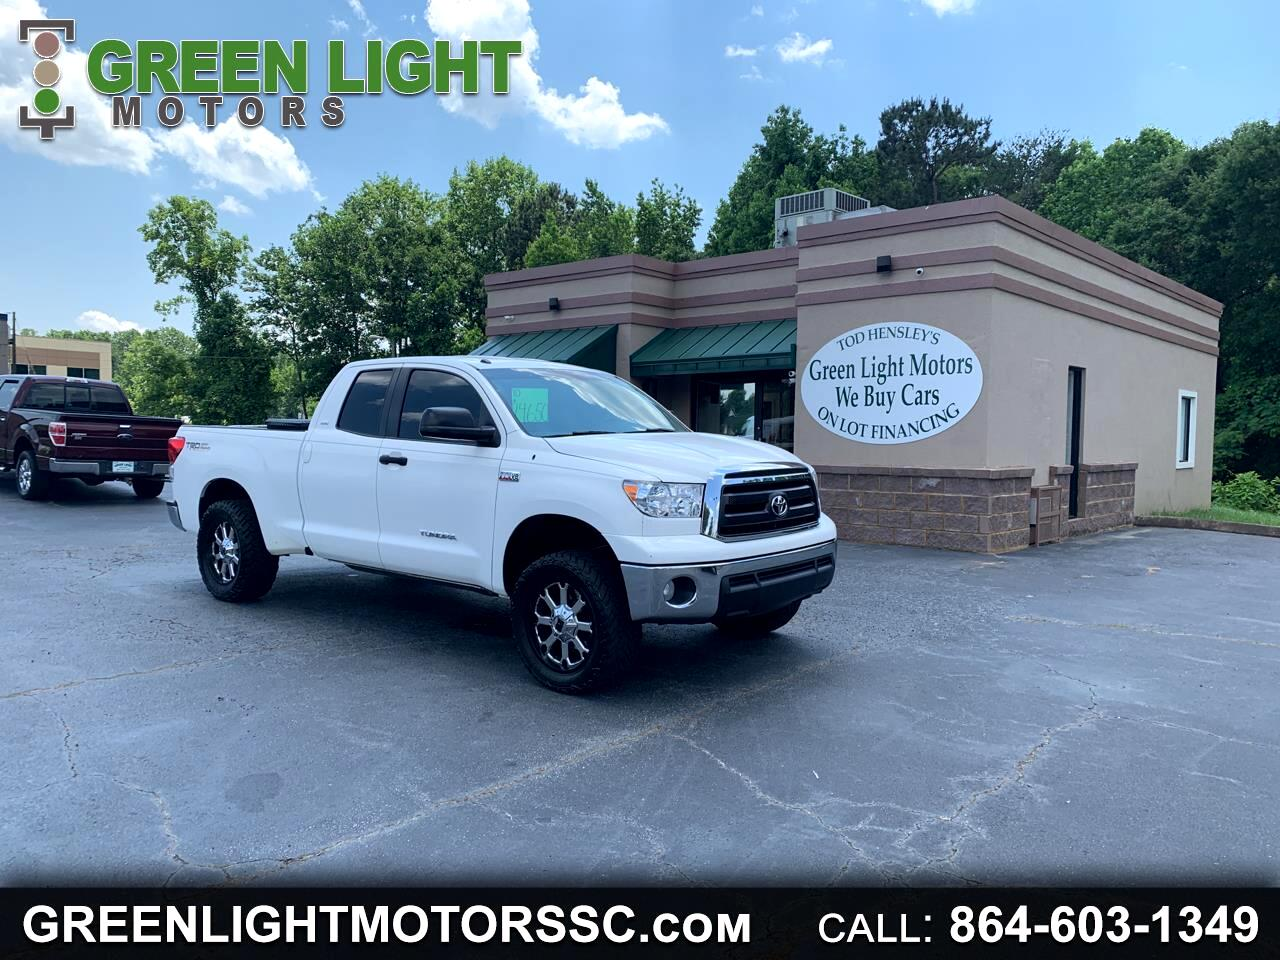 2010 Toyota Tundra TRD Off-Road 5.7L Double Cab 2WD